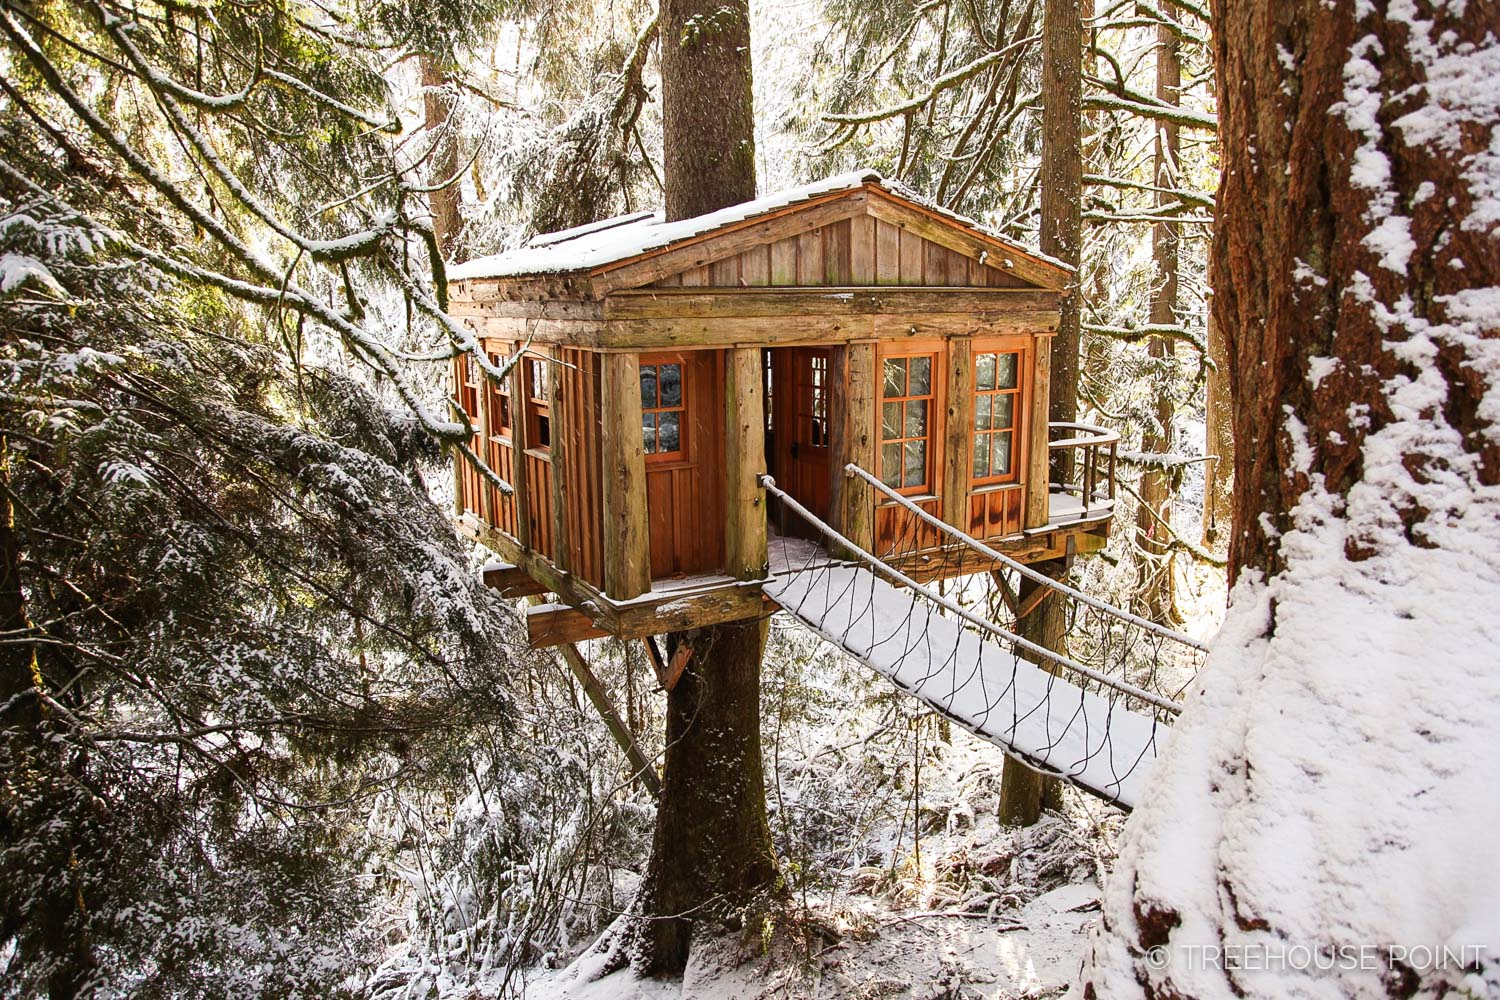 The Temple of the Blue Moon at TreeHouse Point with a dusting of snow